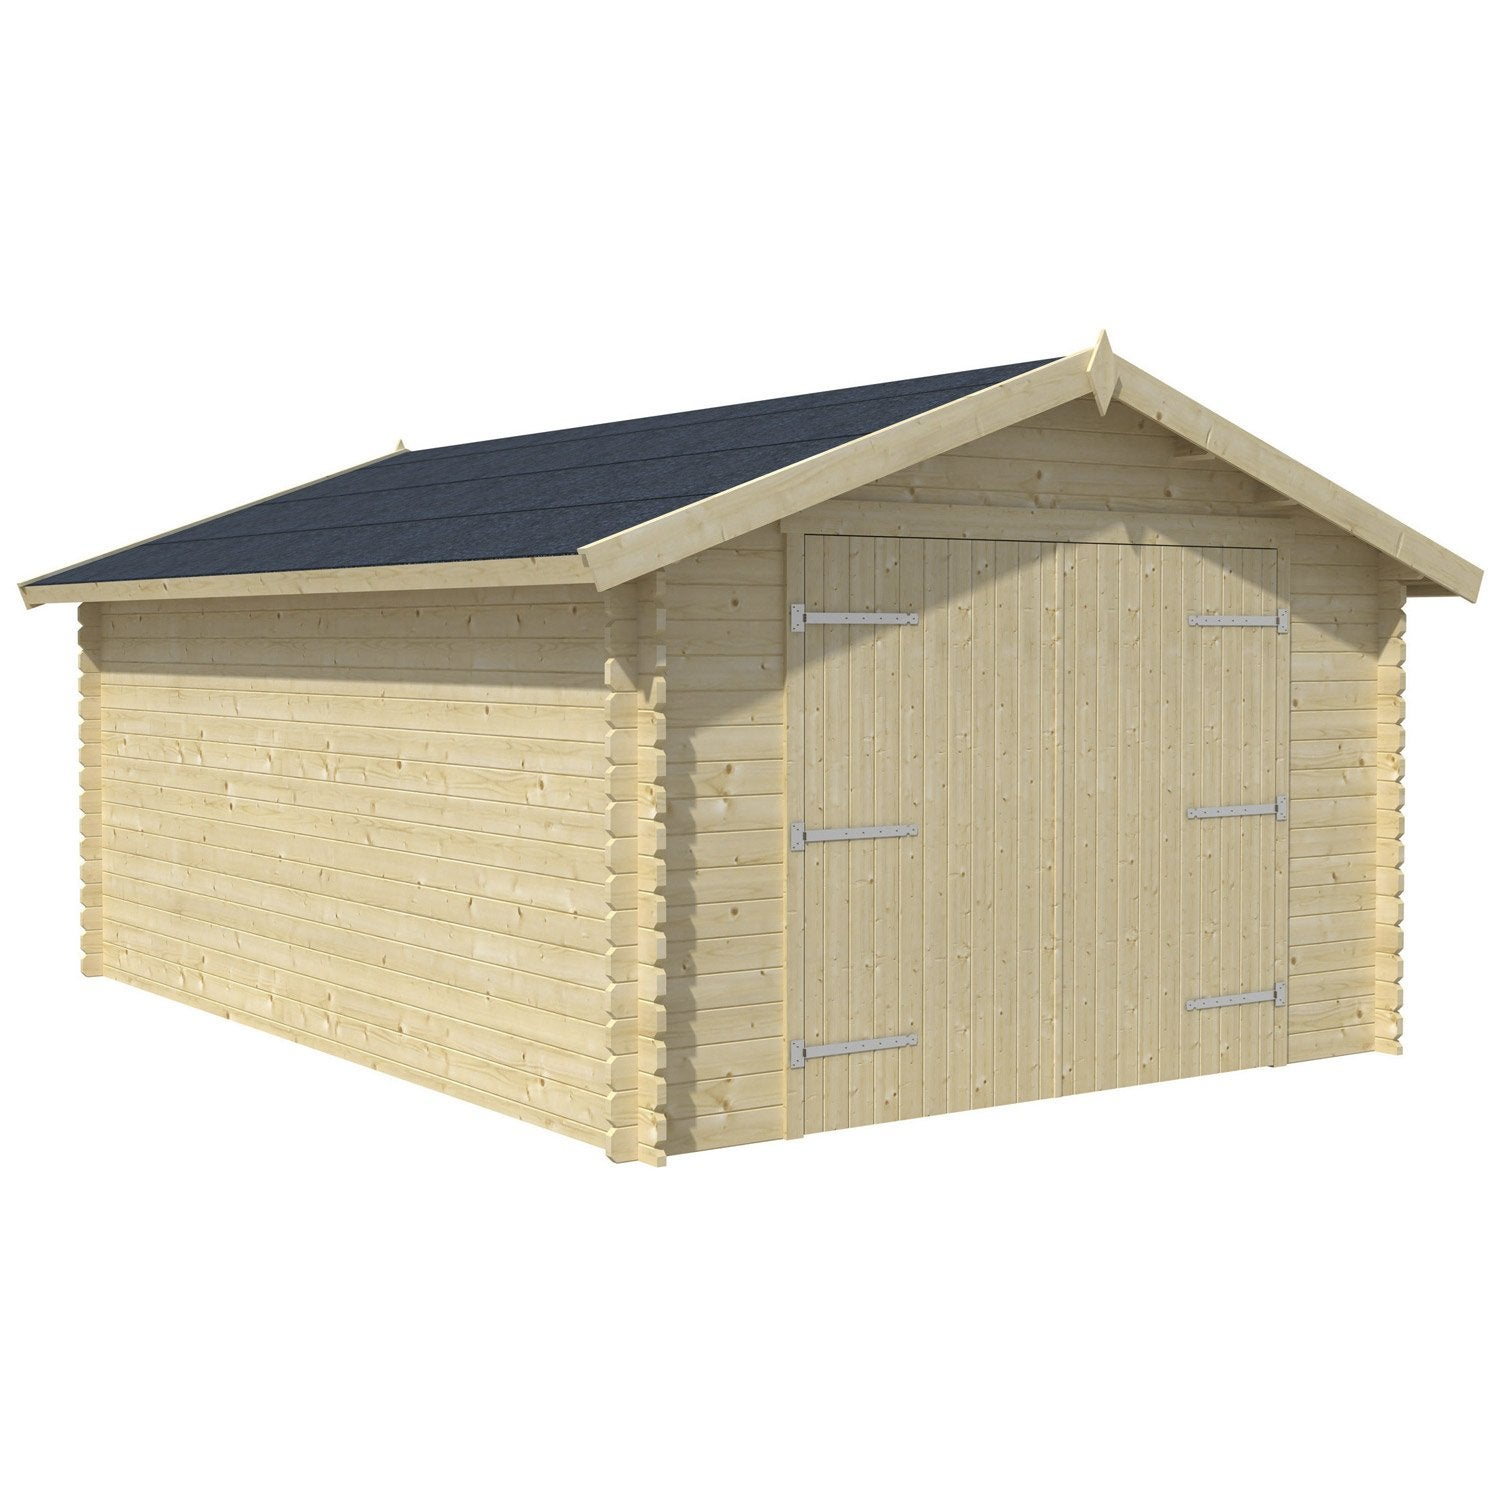 Garage bois nova 1 voiture m leroy merlin for Garage en bois en solde